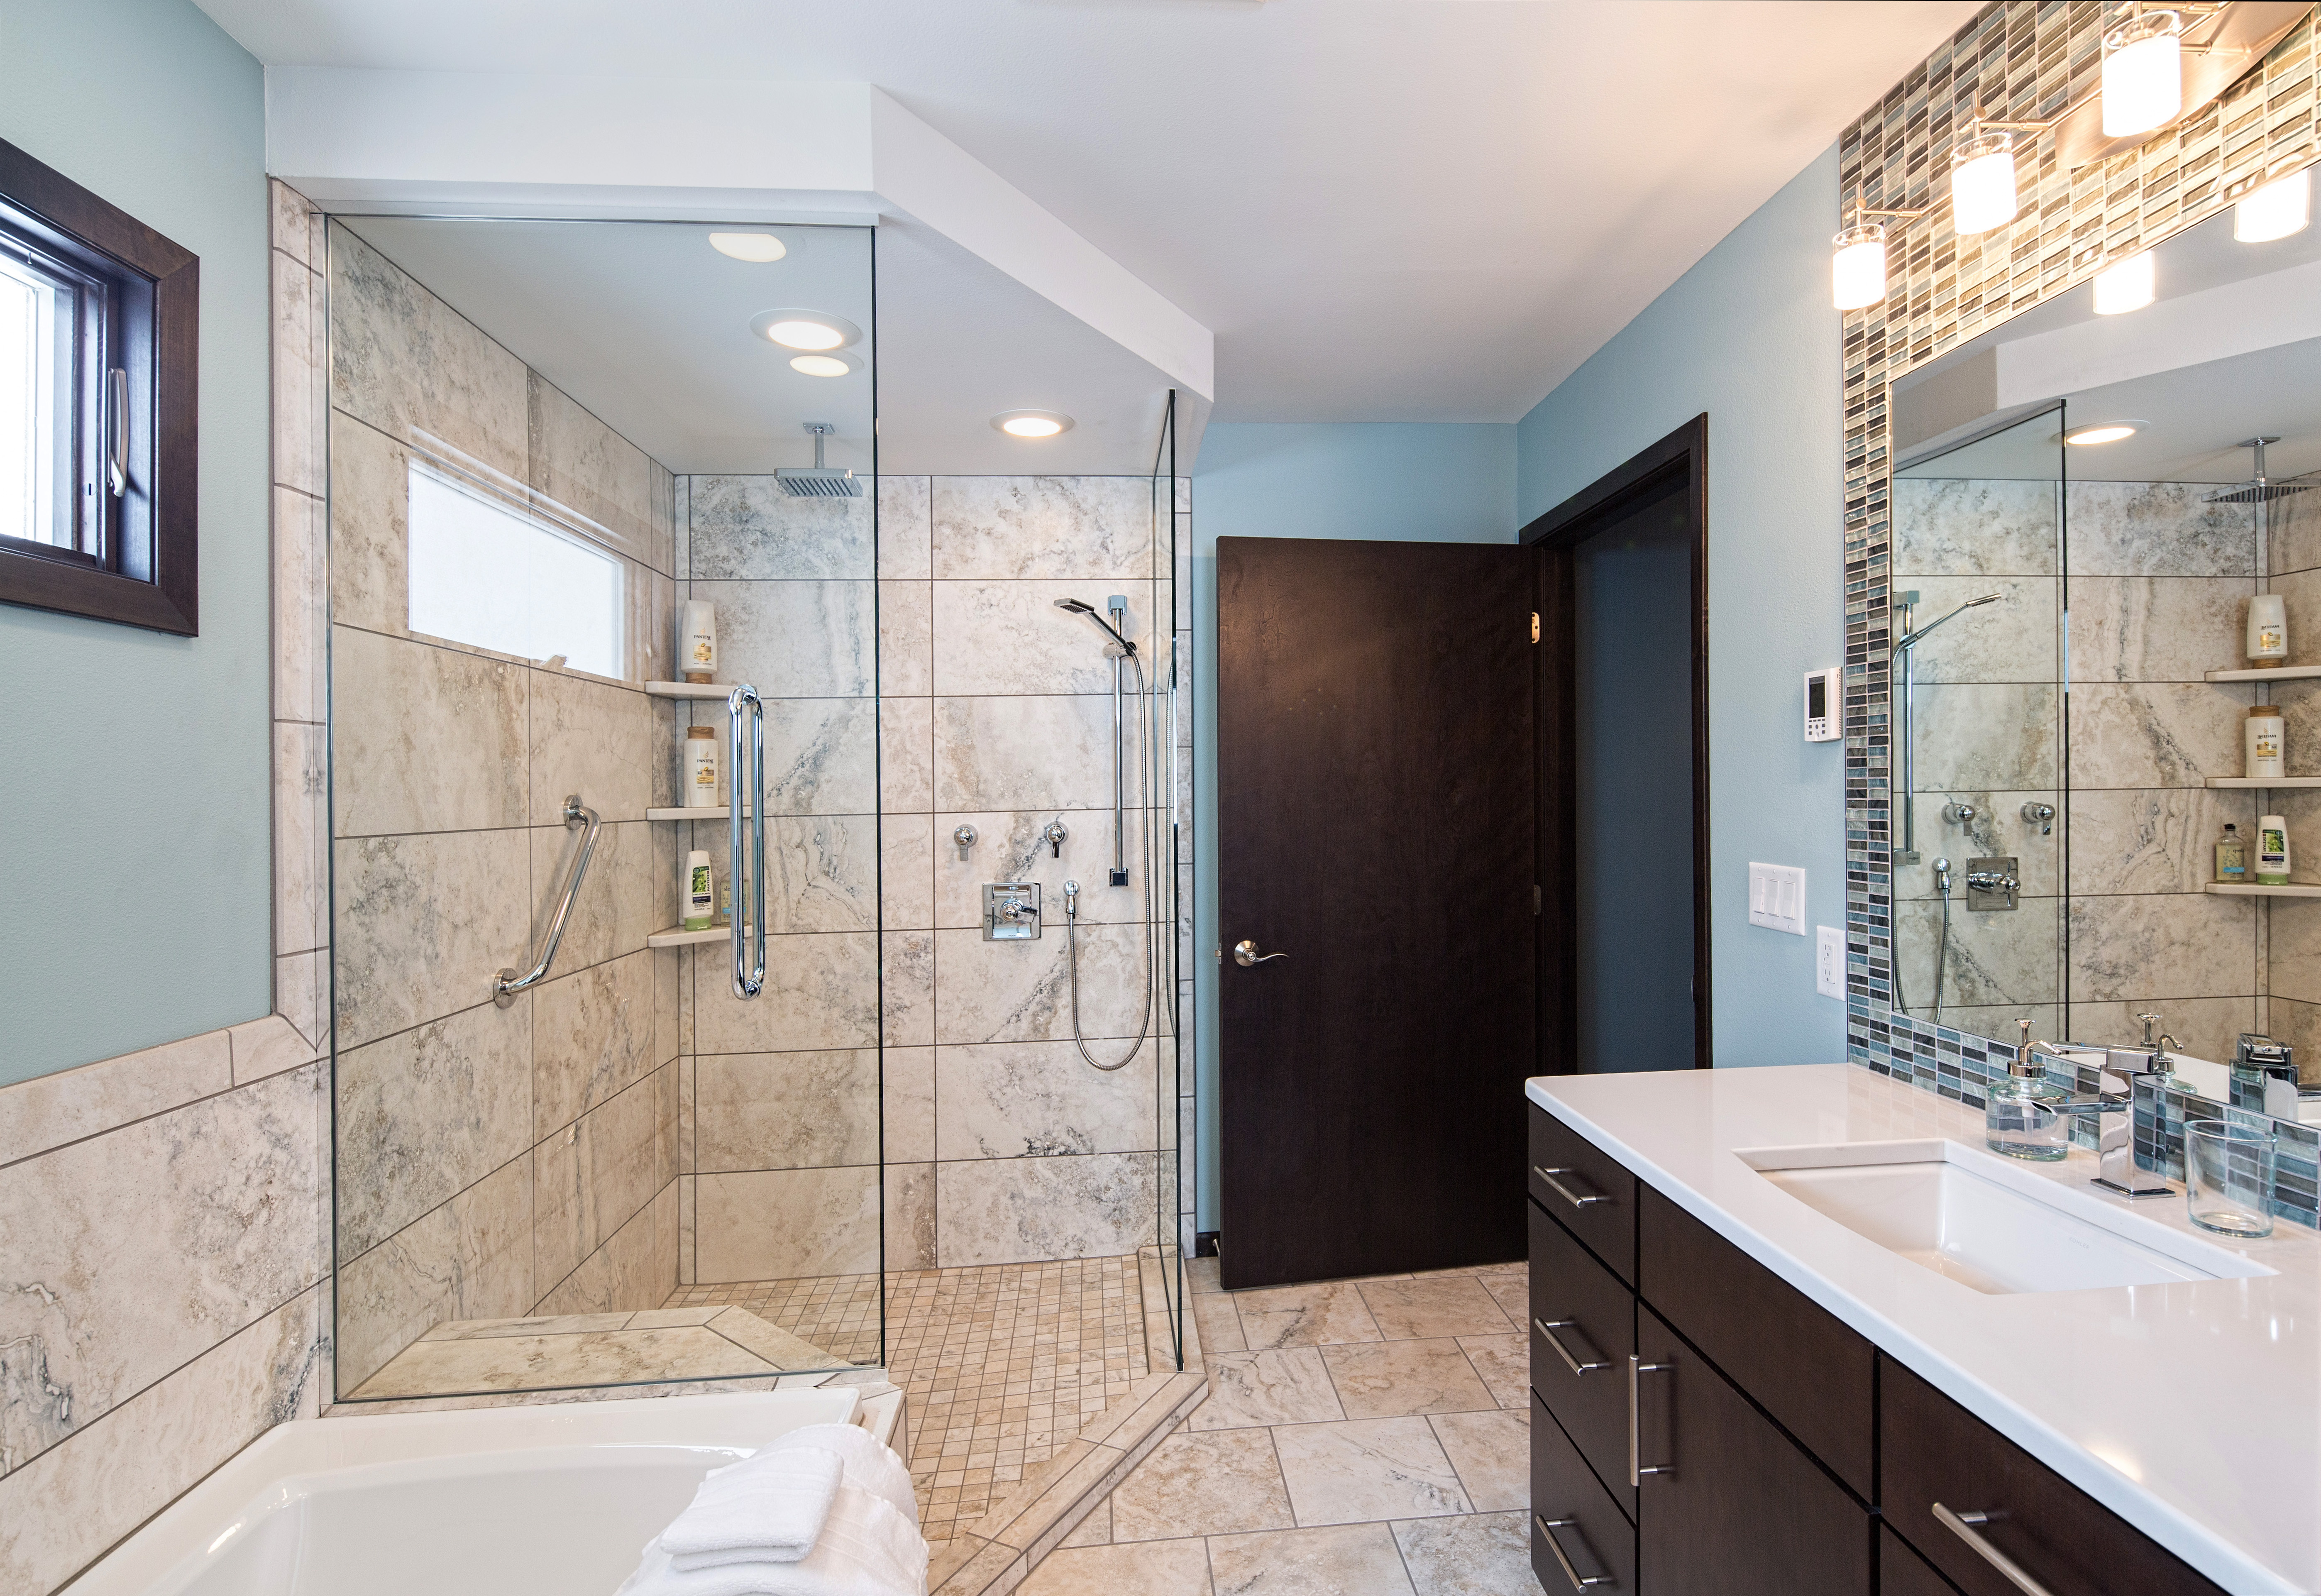 28th Ave N Fargo Home Remodeling Contractors Fargo Nd